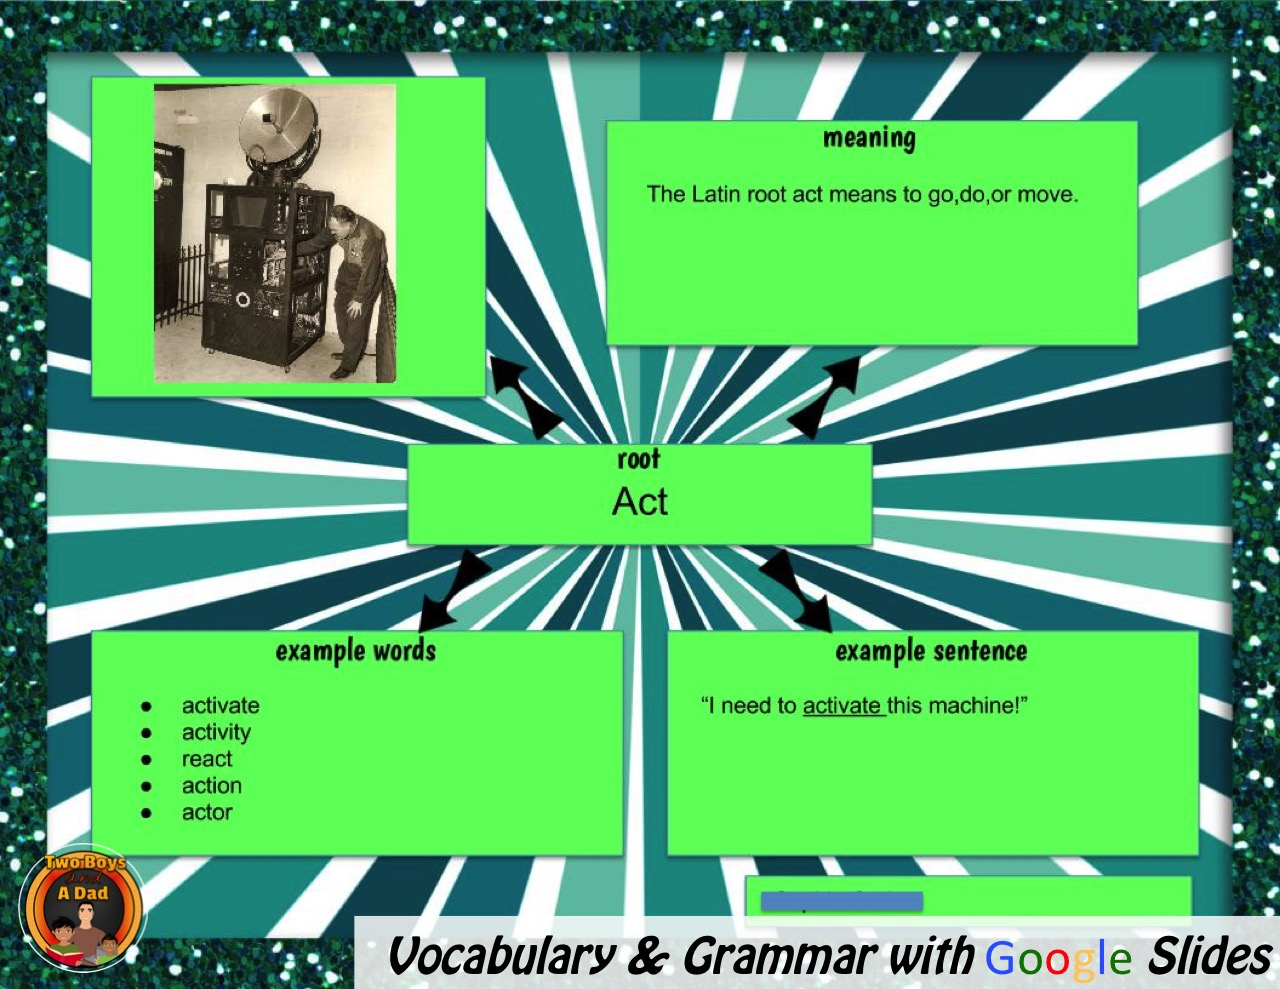 Improve Vocabulary and Grammar with Google Sildes - Two Boys and a Dad